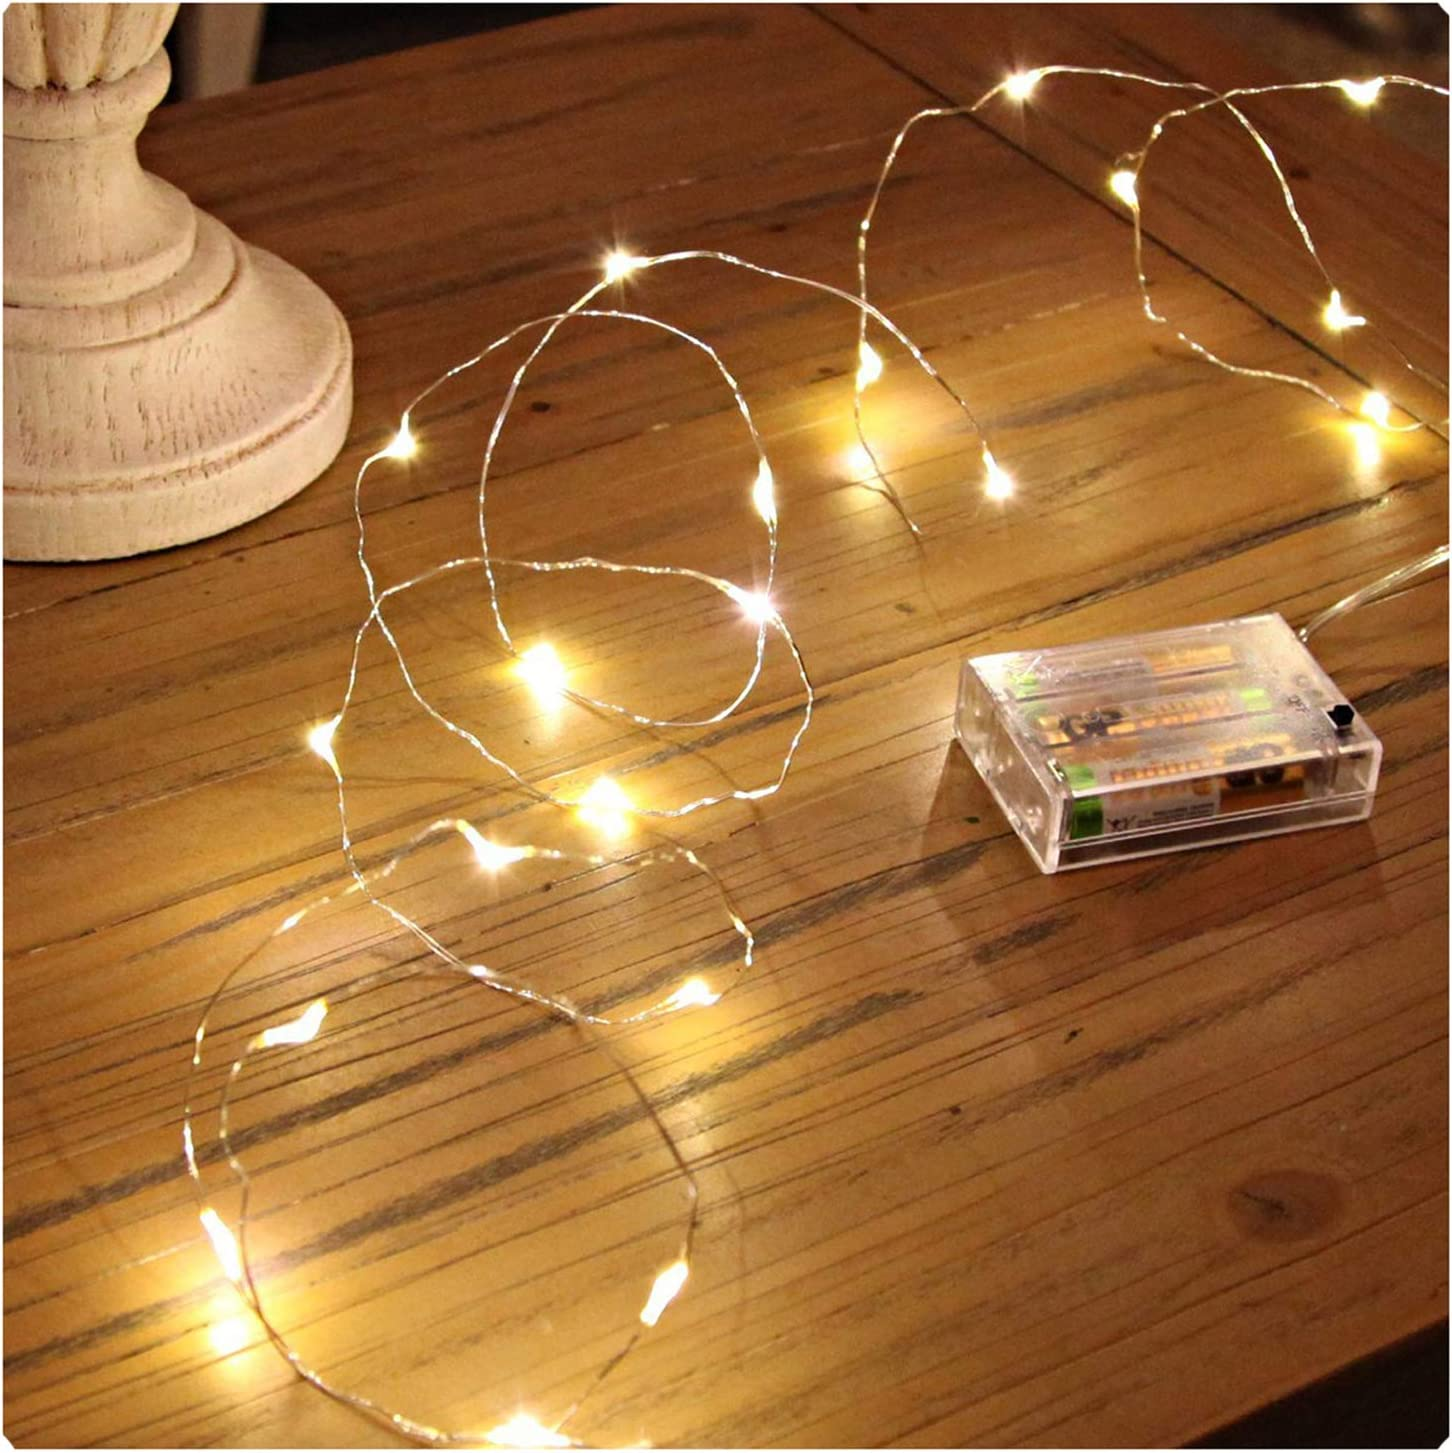 Sanniu Led String Lights  Mini Battery Powered Copper Wire Starry Fairy Lights  Battery Operated Lights for Bedroom  Christmas  Parties  Wedding  Centerpiece  Decoration  5m 16ft Warm White